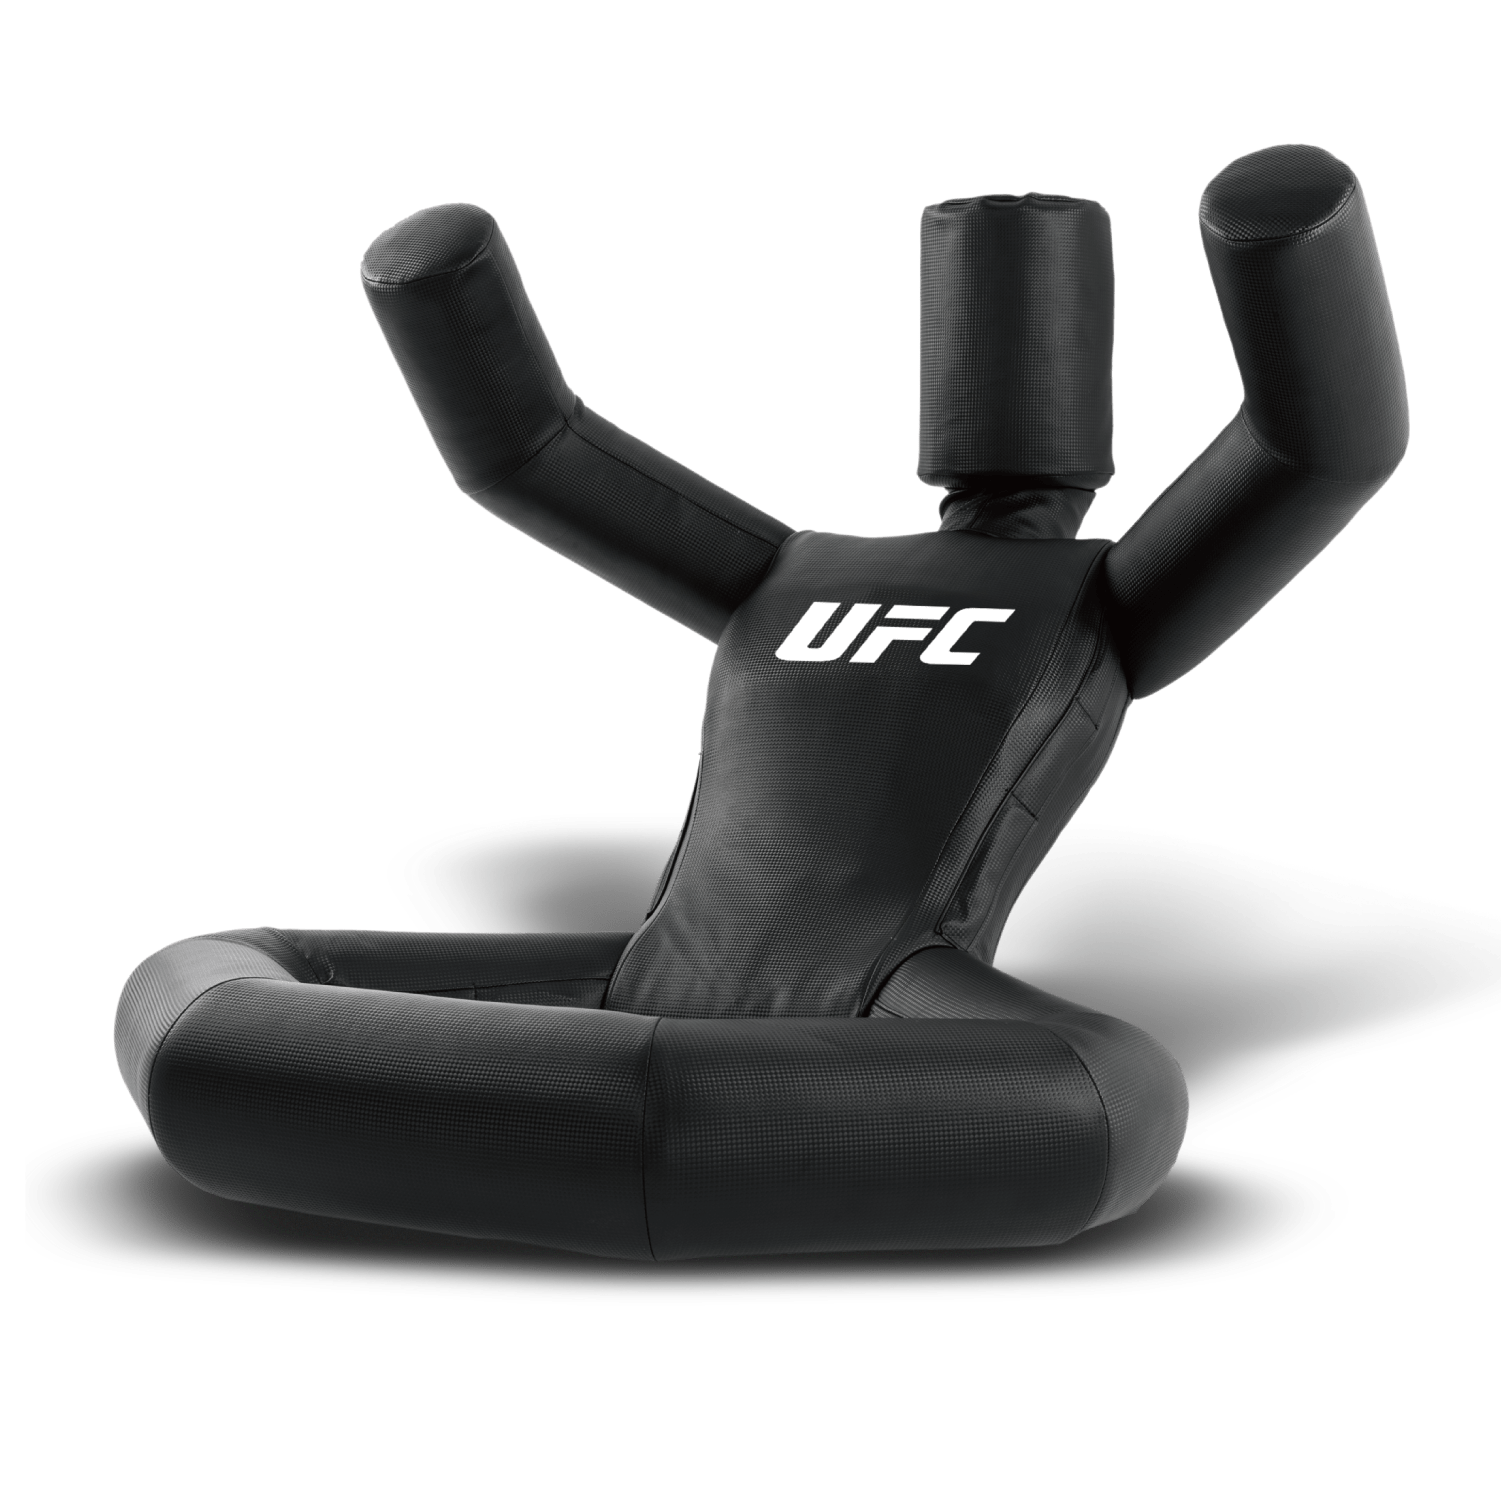 UFC MMA TRAINER-1.png